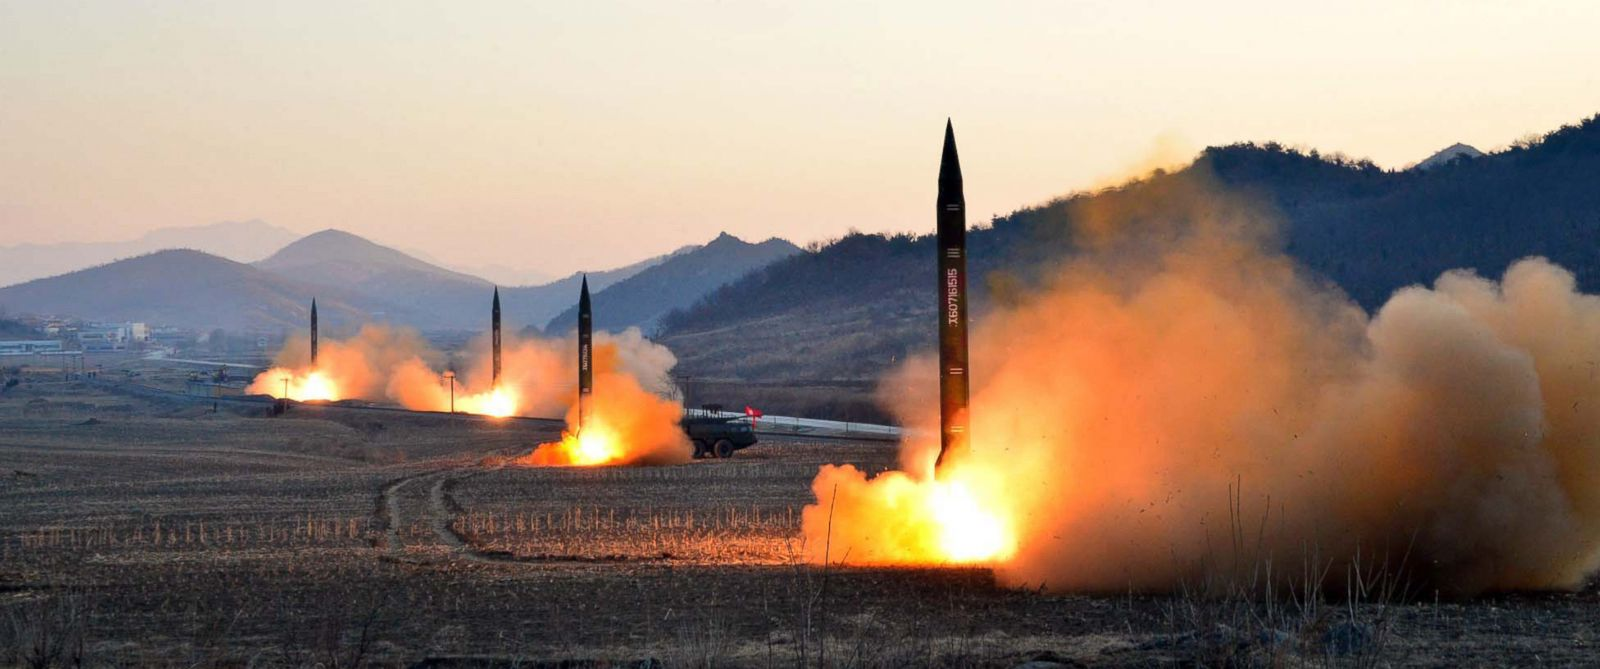 gty-north-korea-missile-launch-04-jc-170